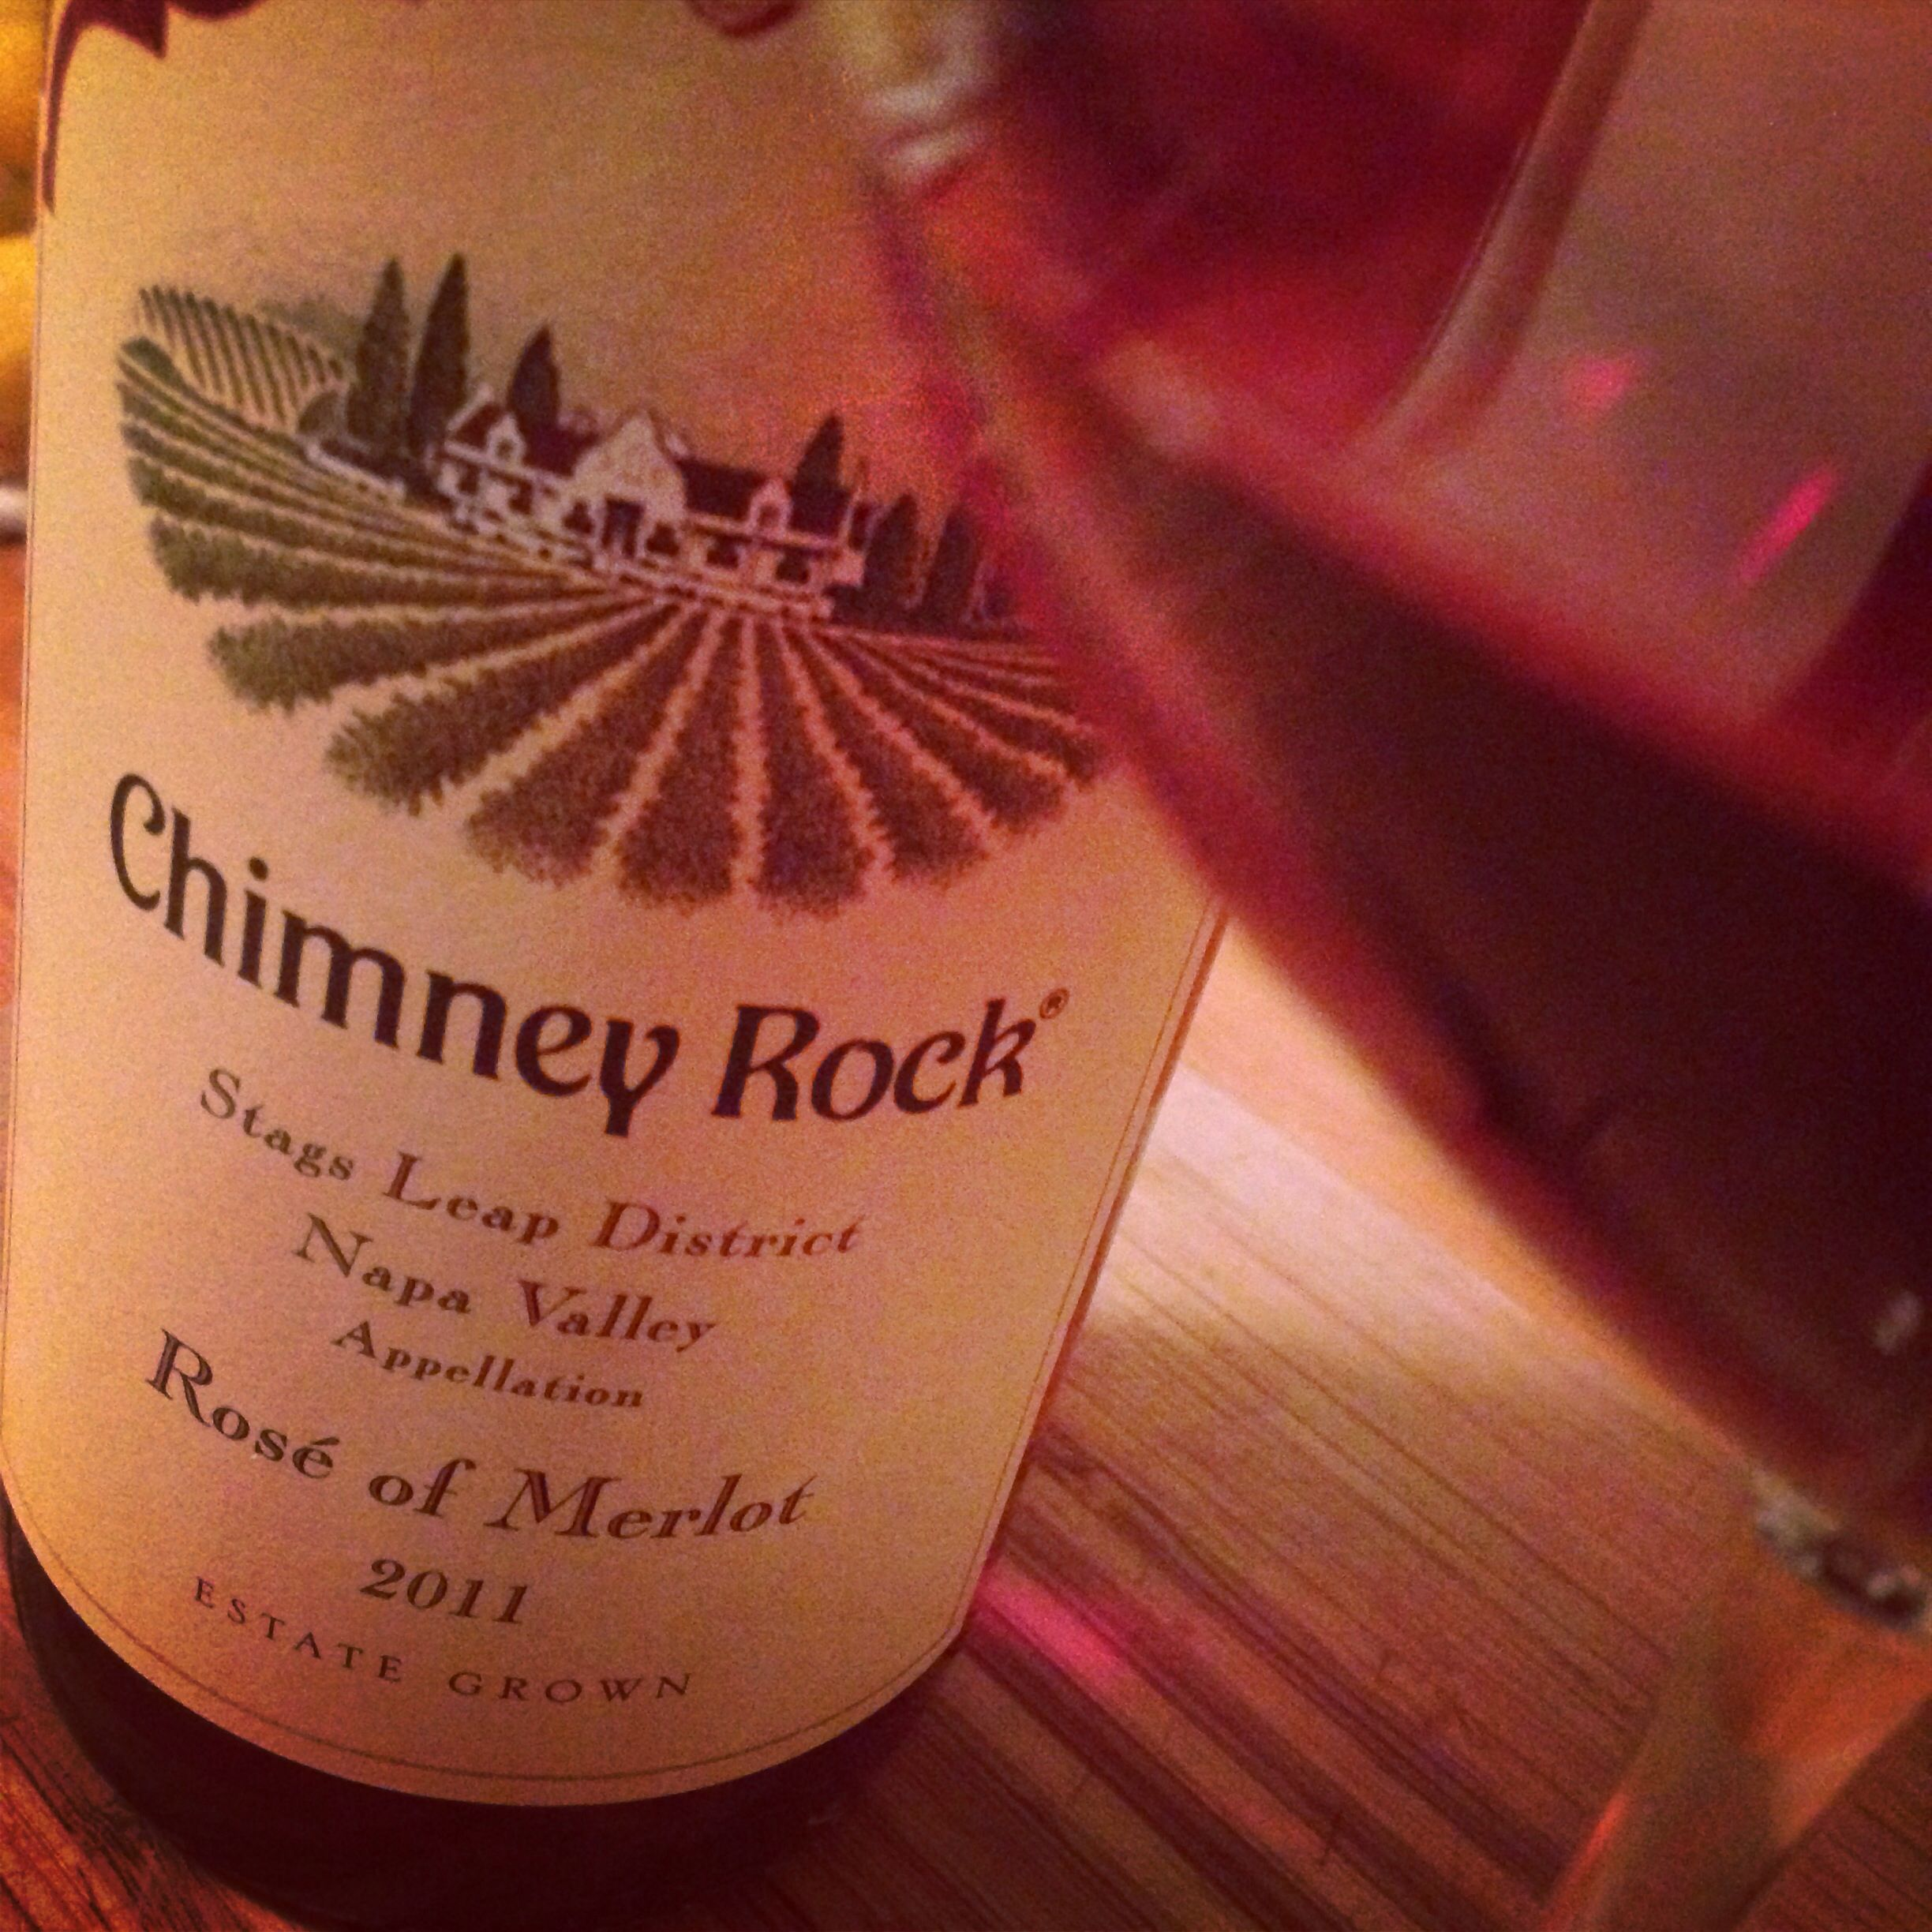 2011 Chimney Rock Merlot Rosé ... Yum!!!